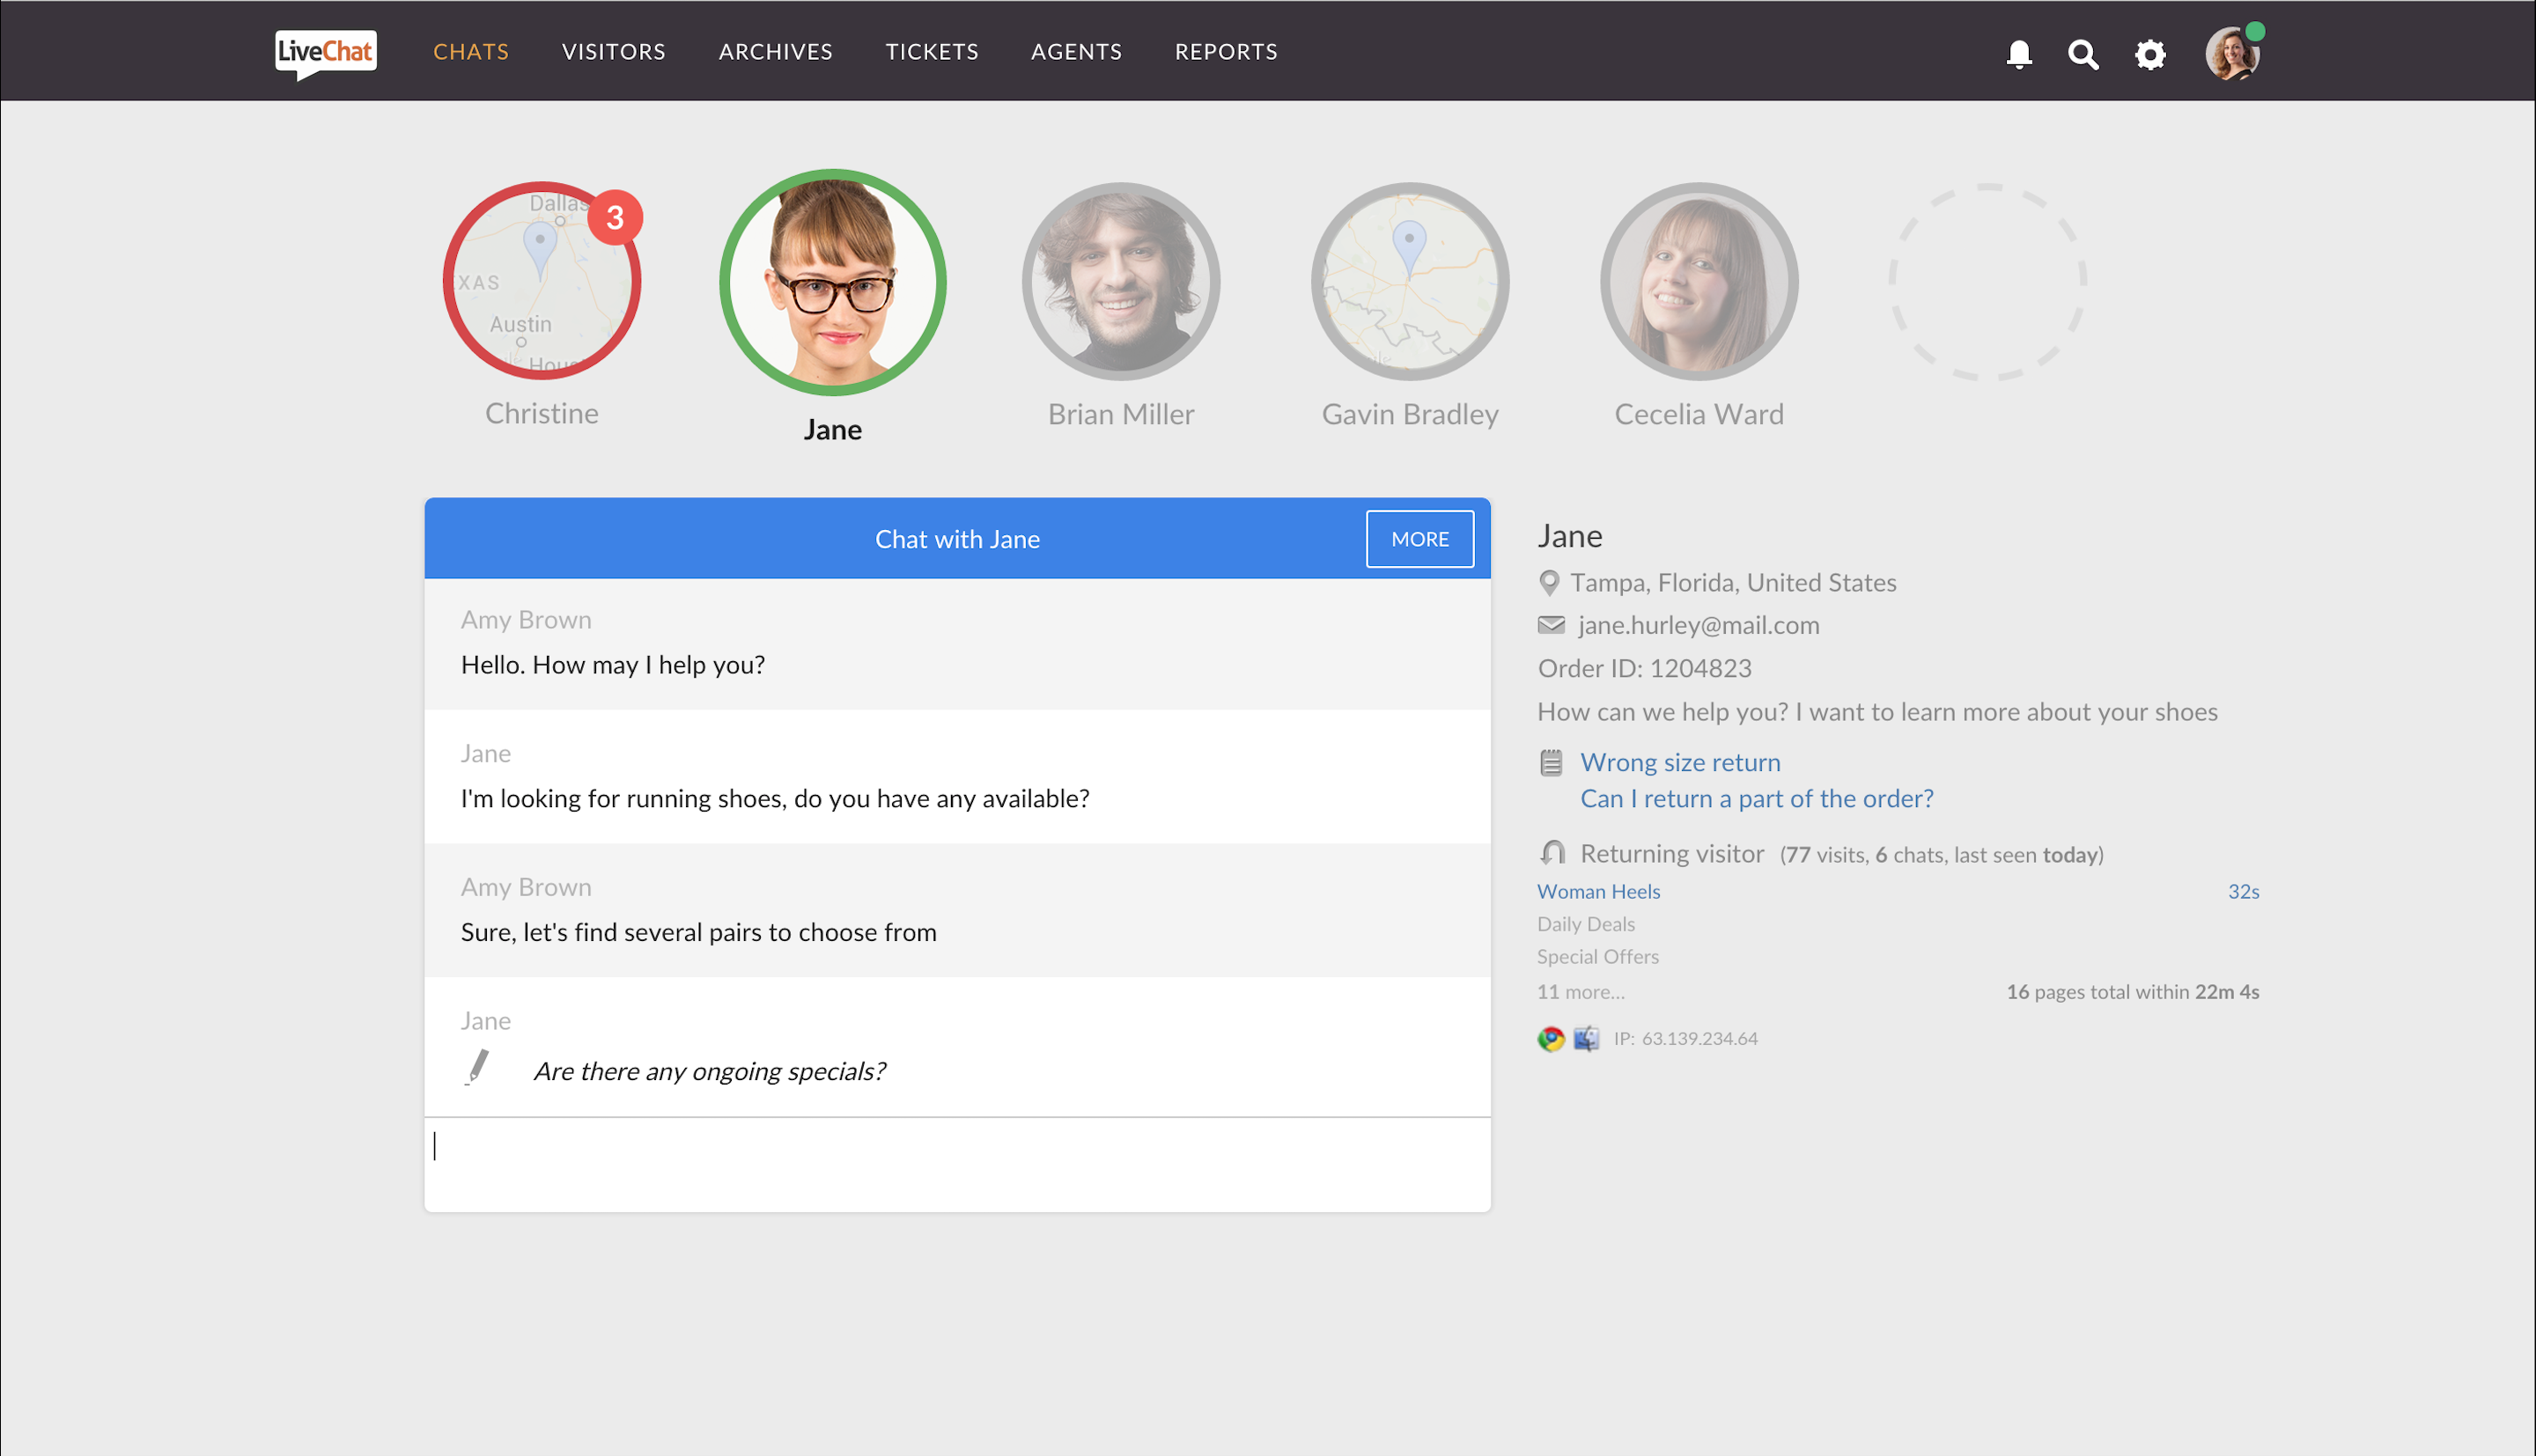 Chat operators get the tools and information they need to provide customer service via live chat.